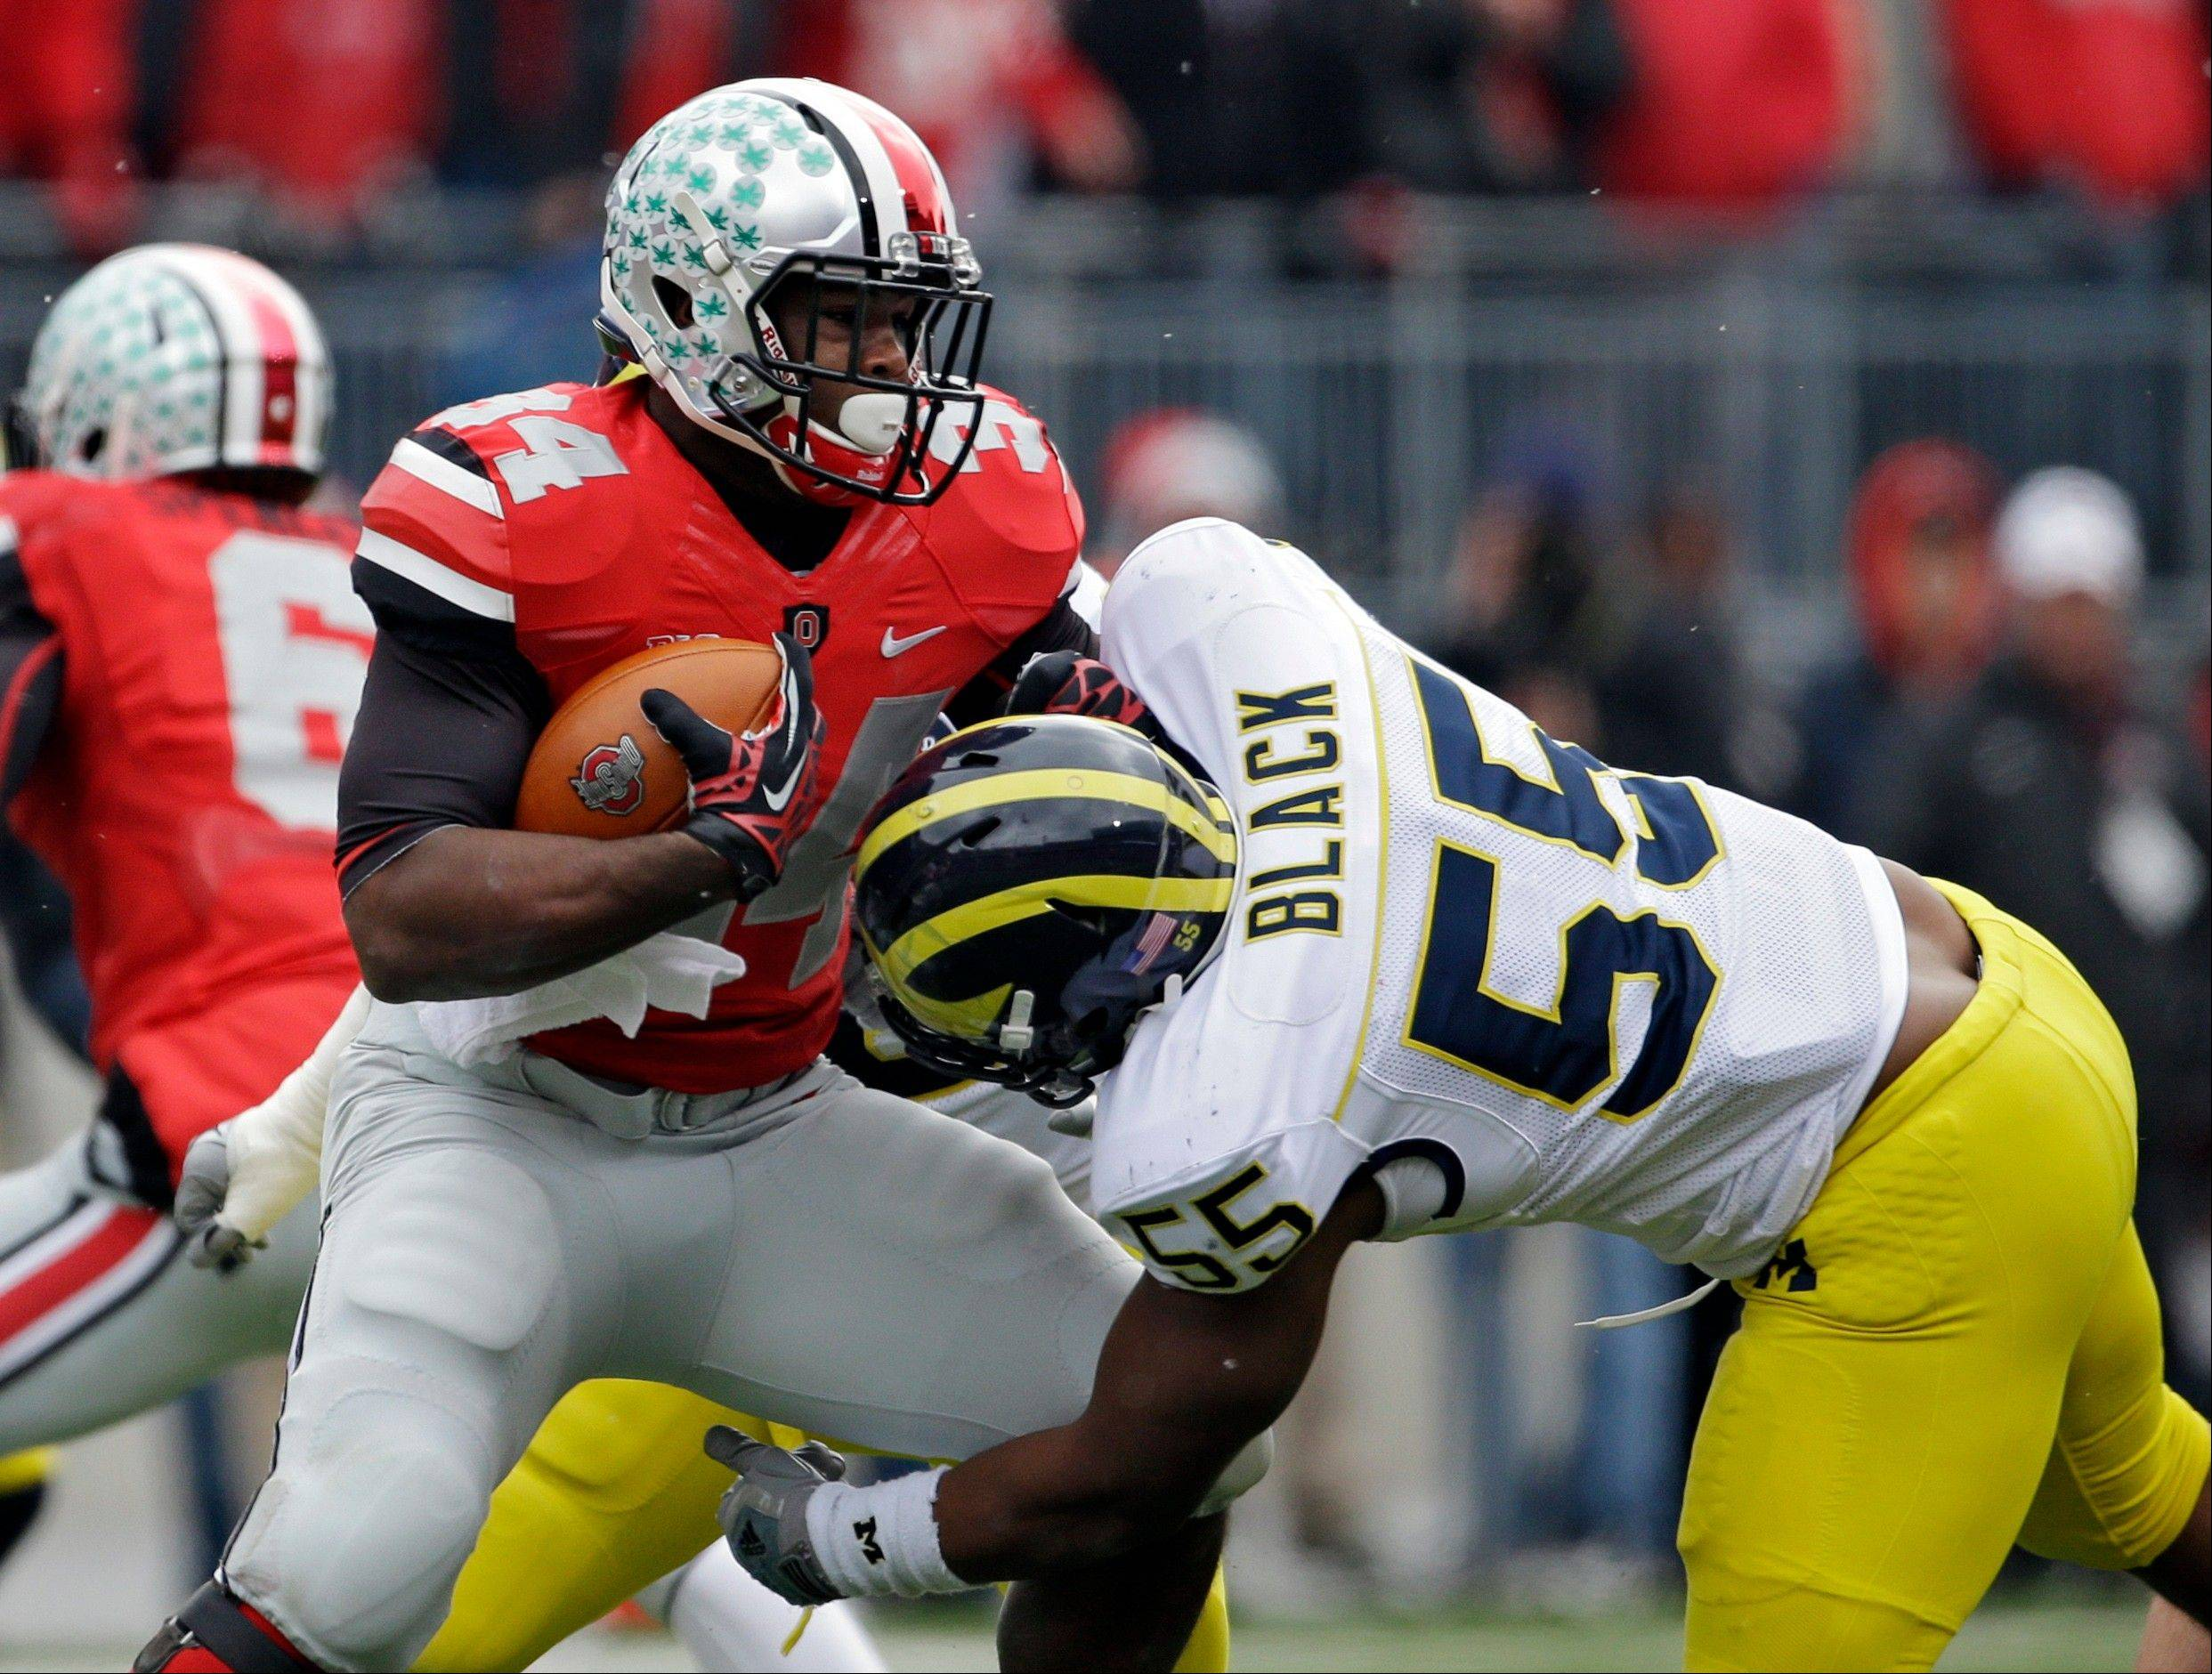 Hyde's return likely to shake up Ohio State's rotation